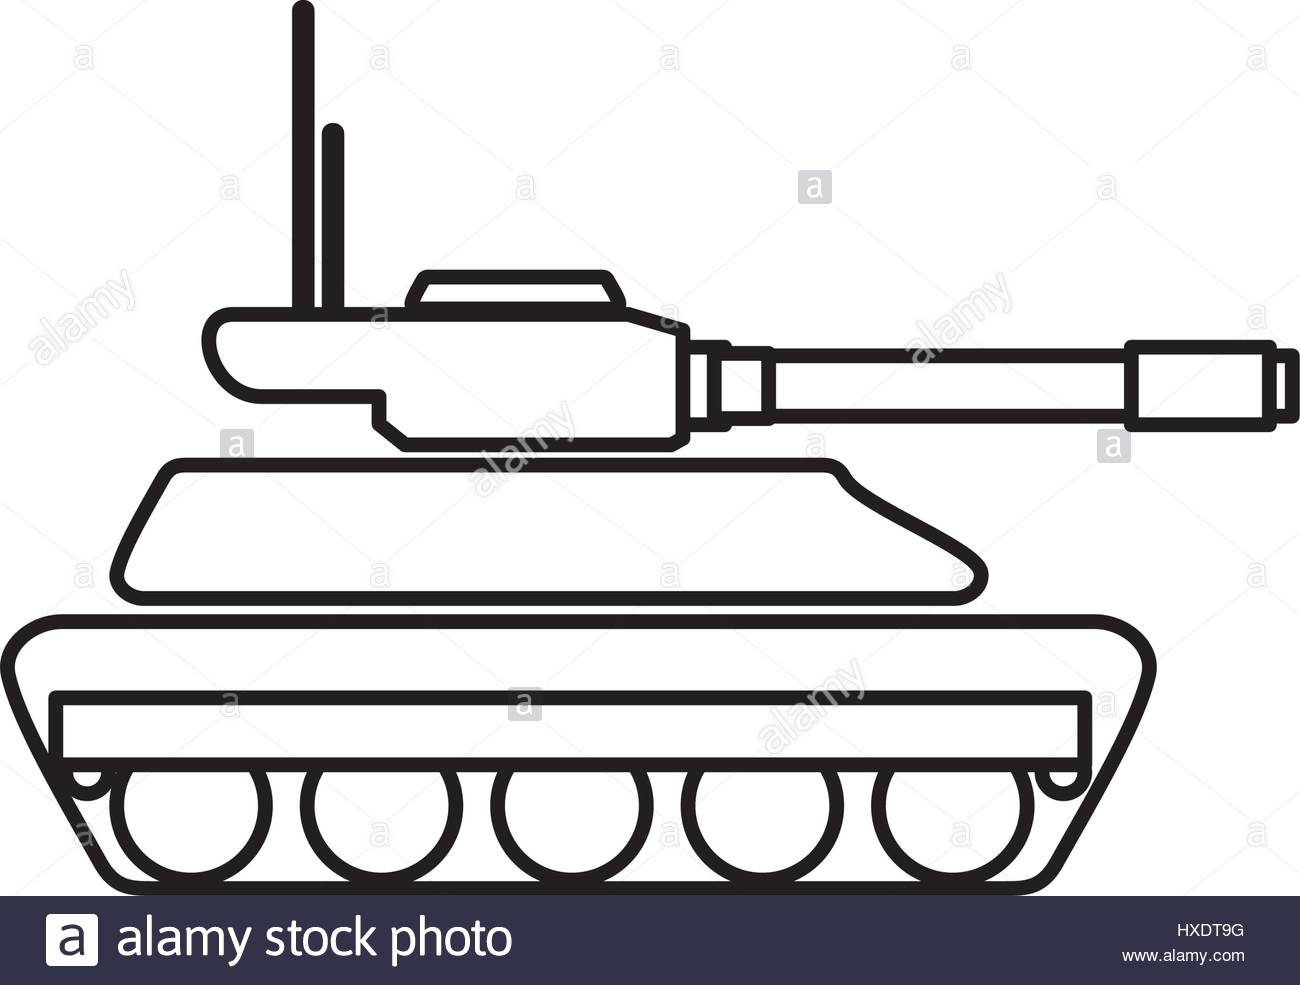 1300x985 Military Tank Stock Vector Images